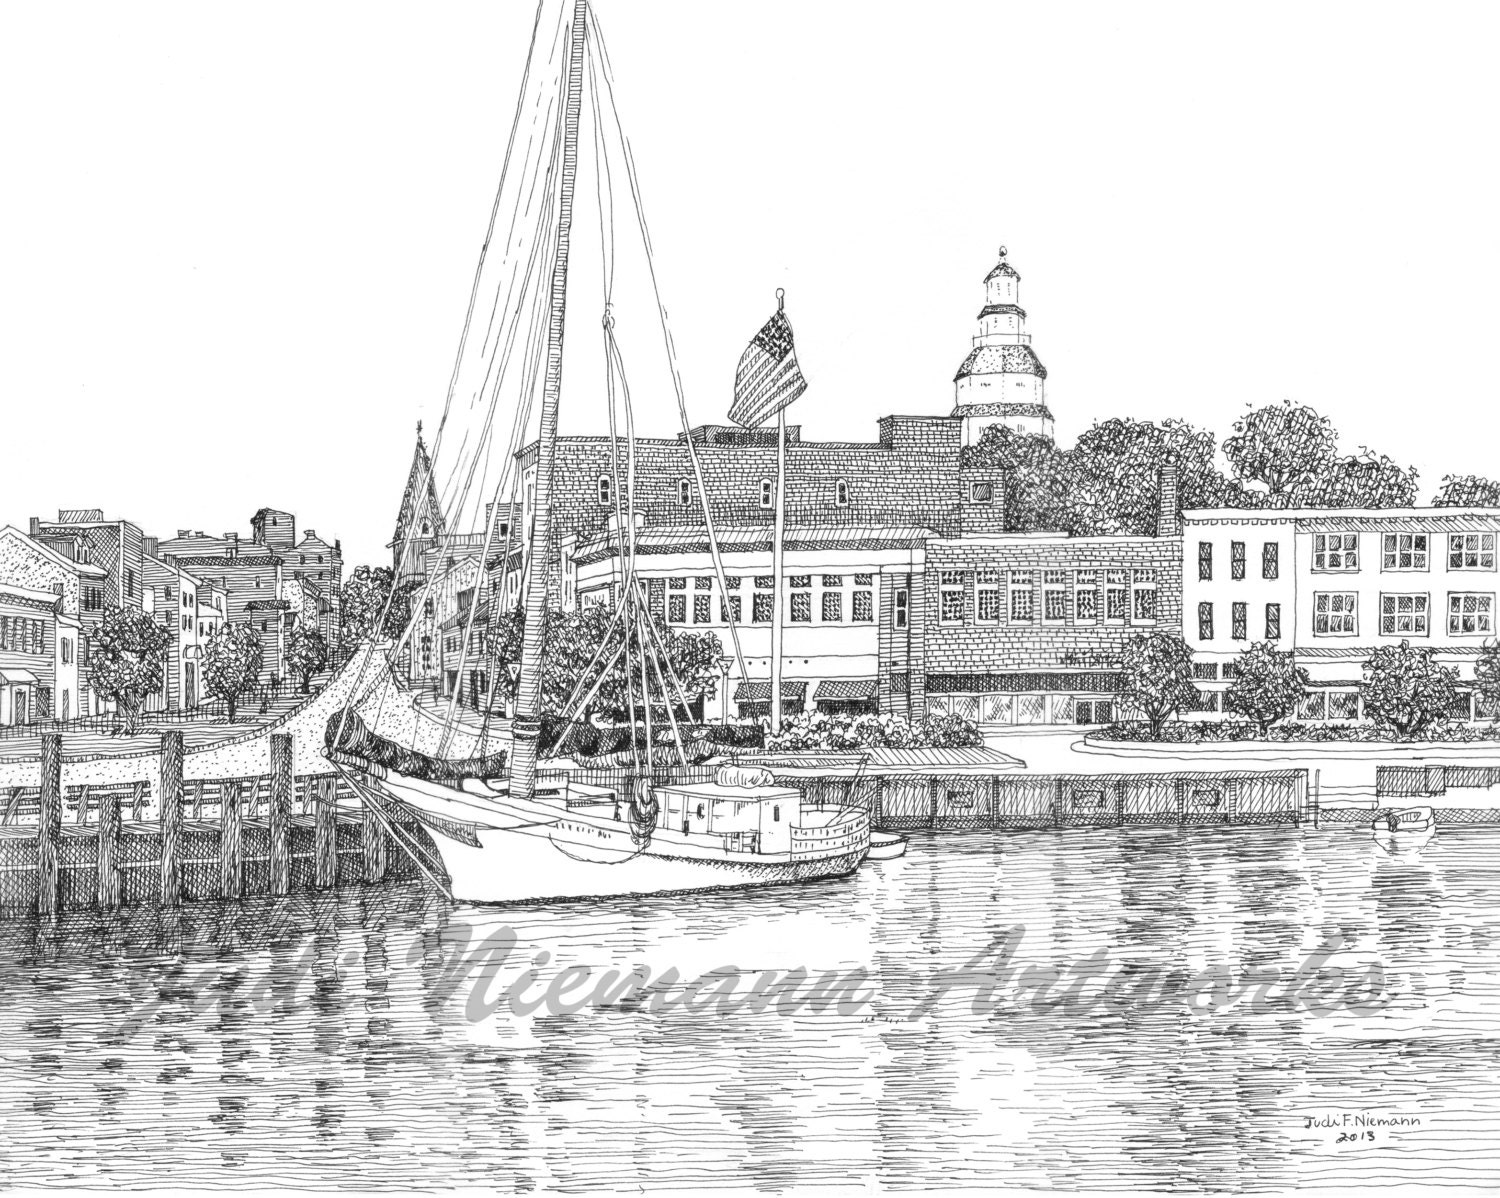 Annapolis harbor artist us naval academy print original ink drawingcity dock